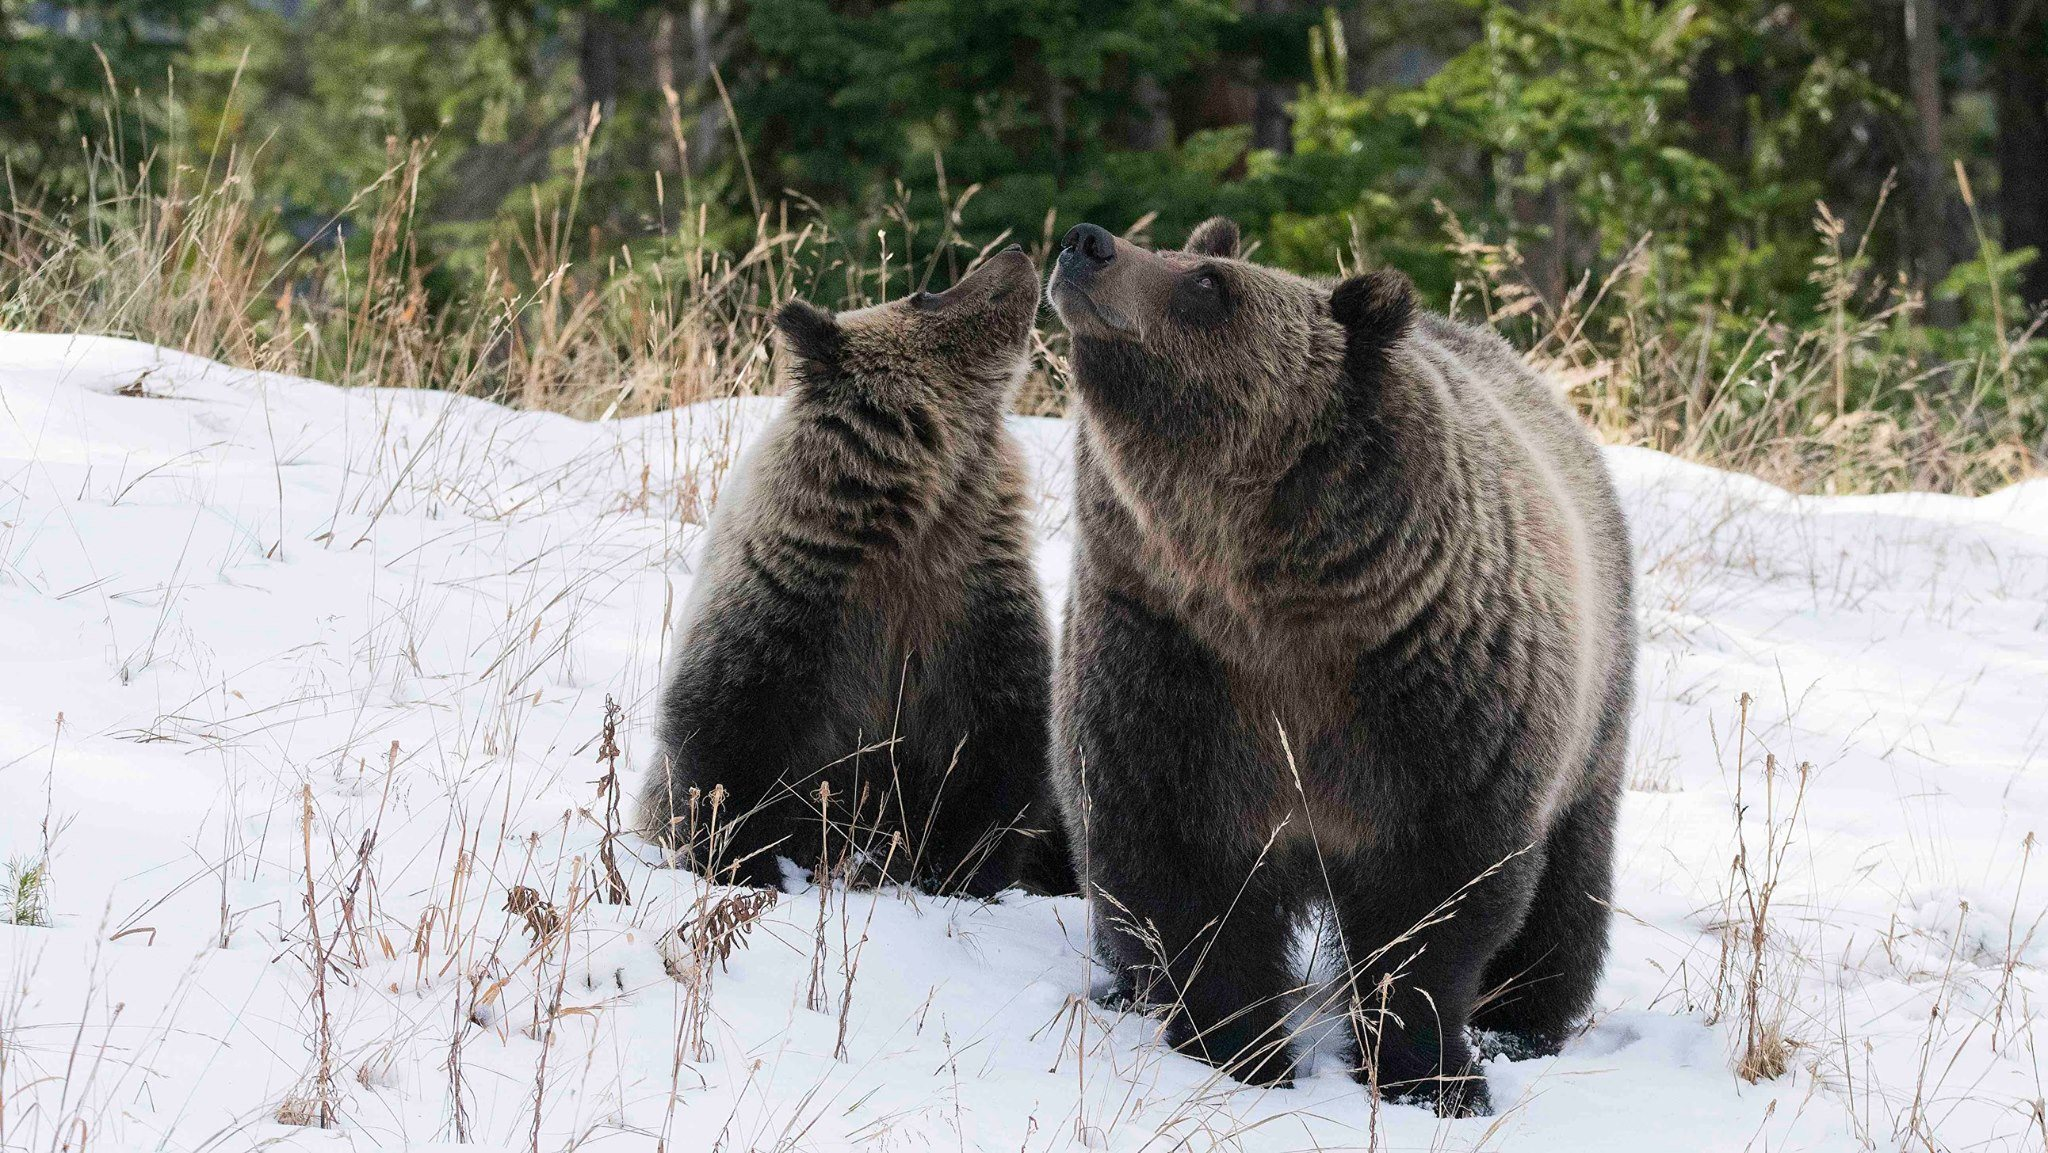 A grizzly bear mother and cub (Trophy/Lush)